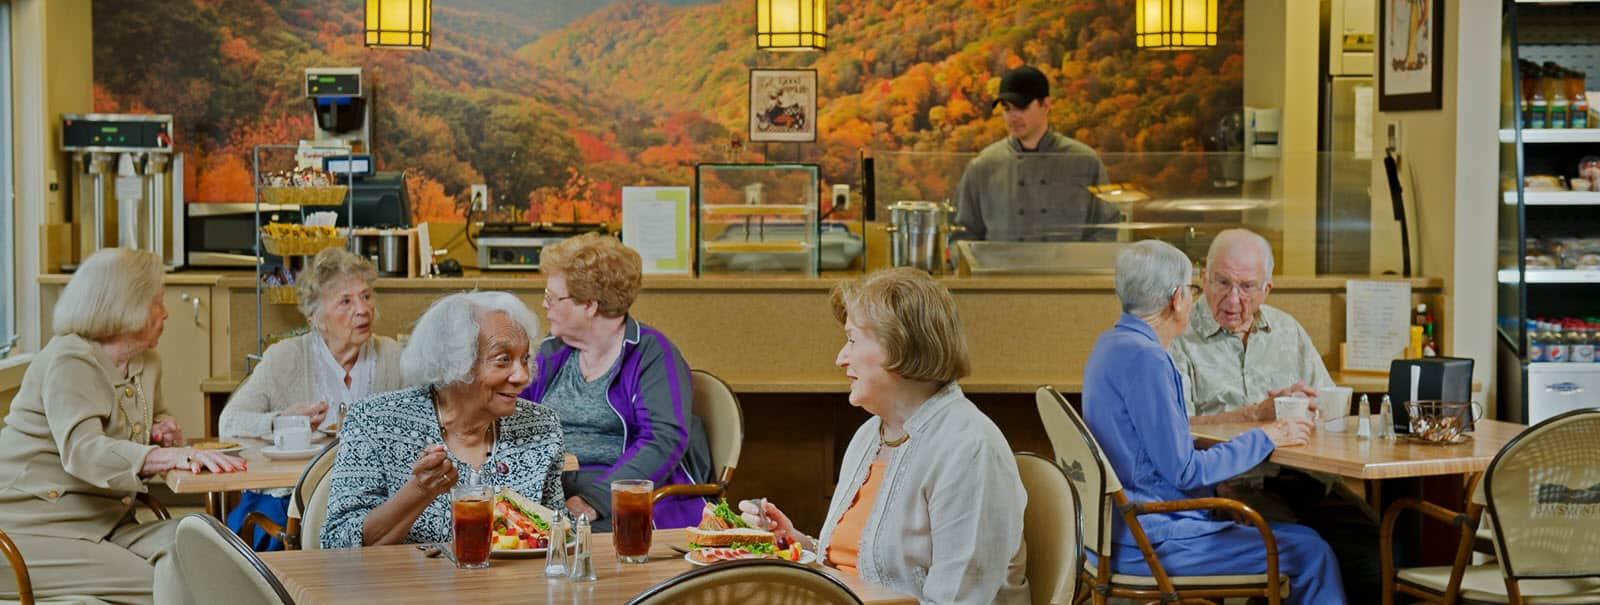 asbury place kingsport retirement community dining